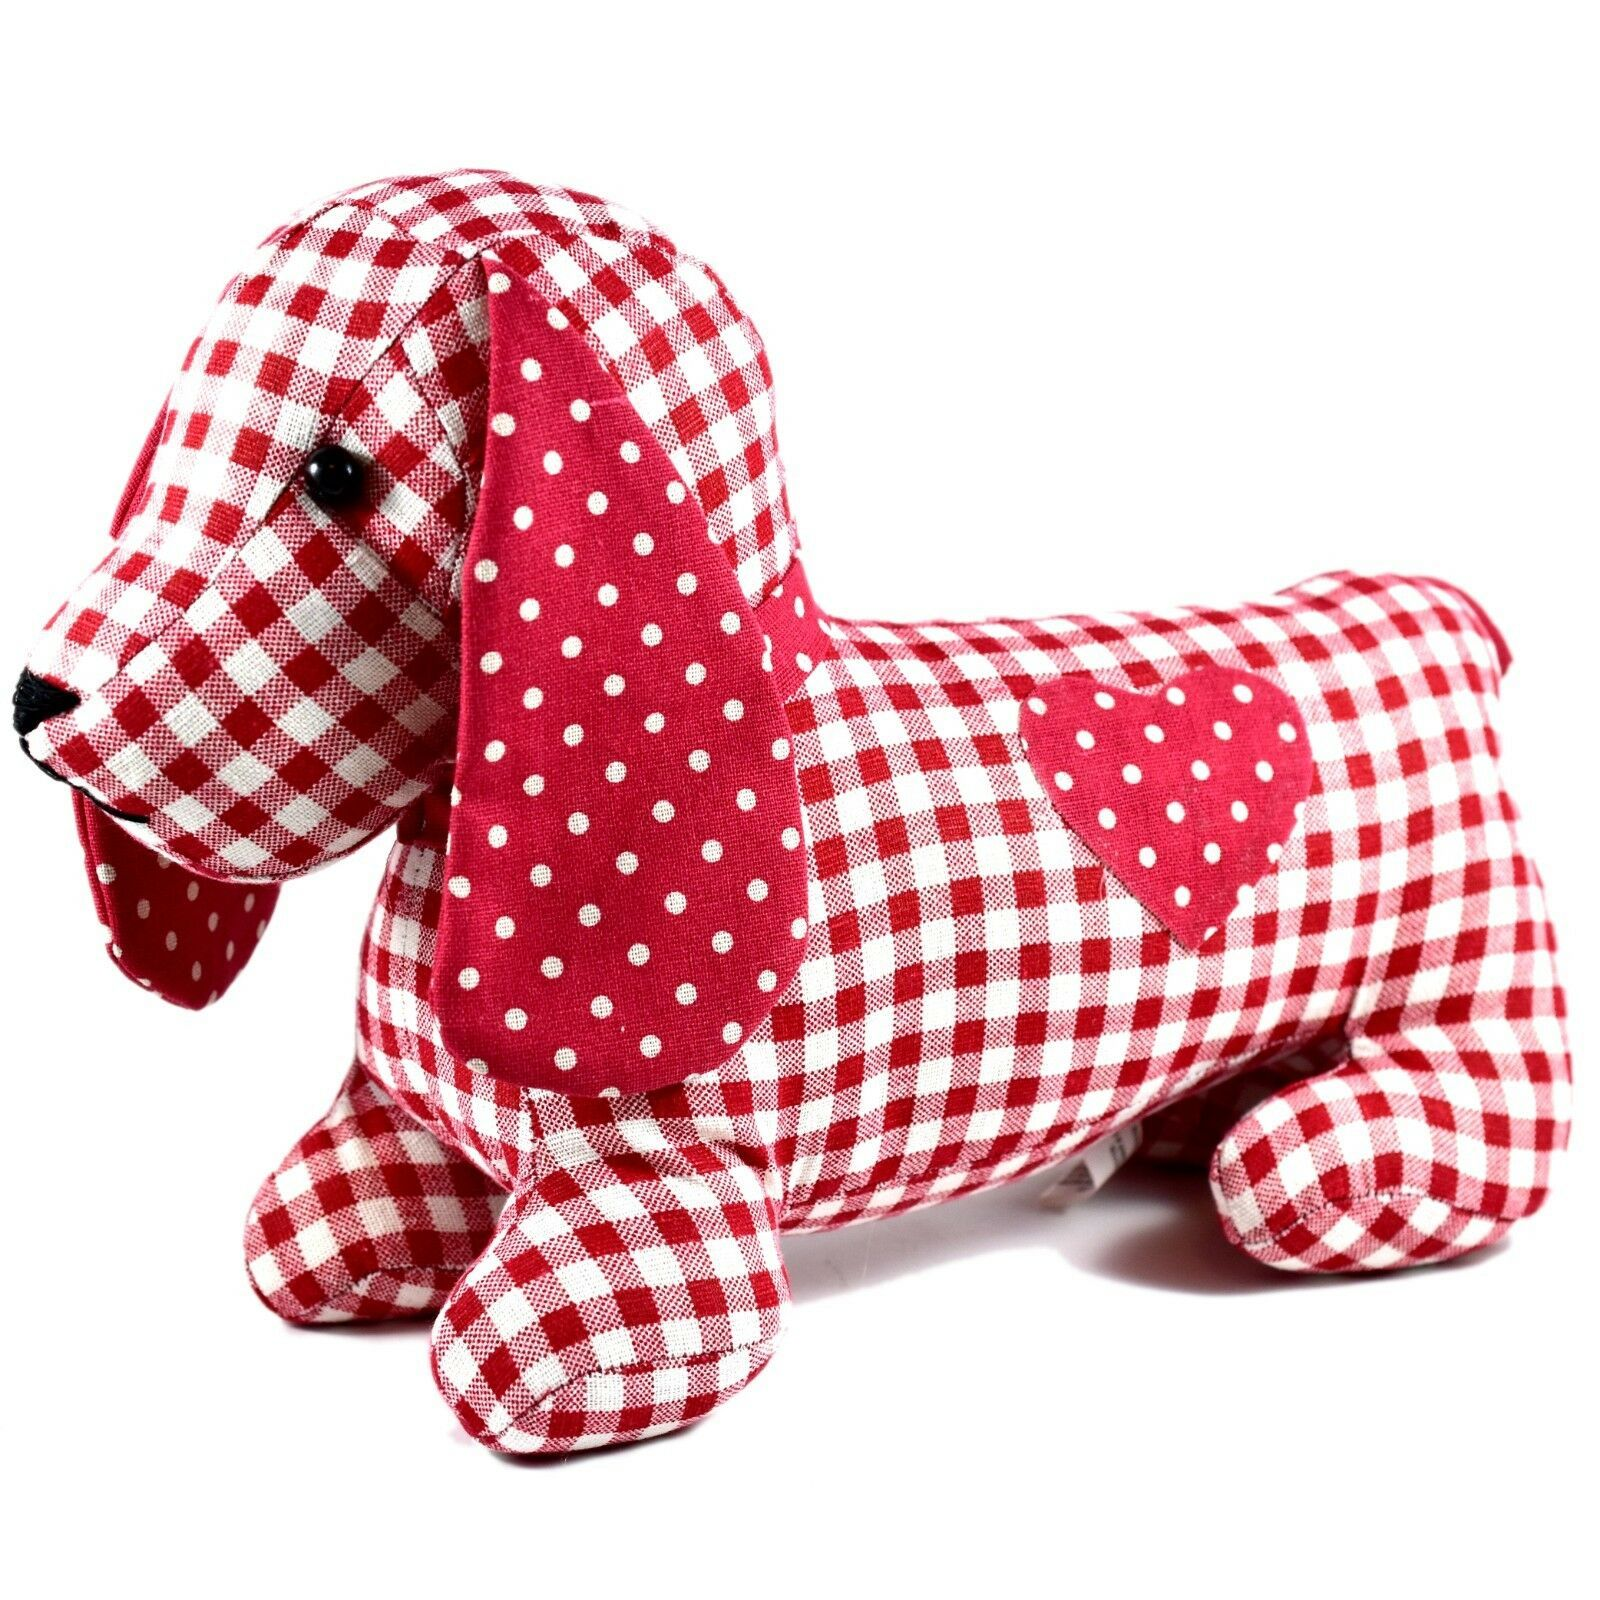 Delton Checkered Plaid Red Heart Dachshund Puppy Dog Love Door Stopper Doorstop